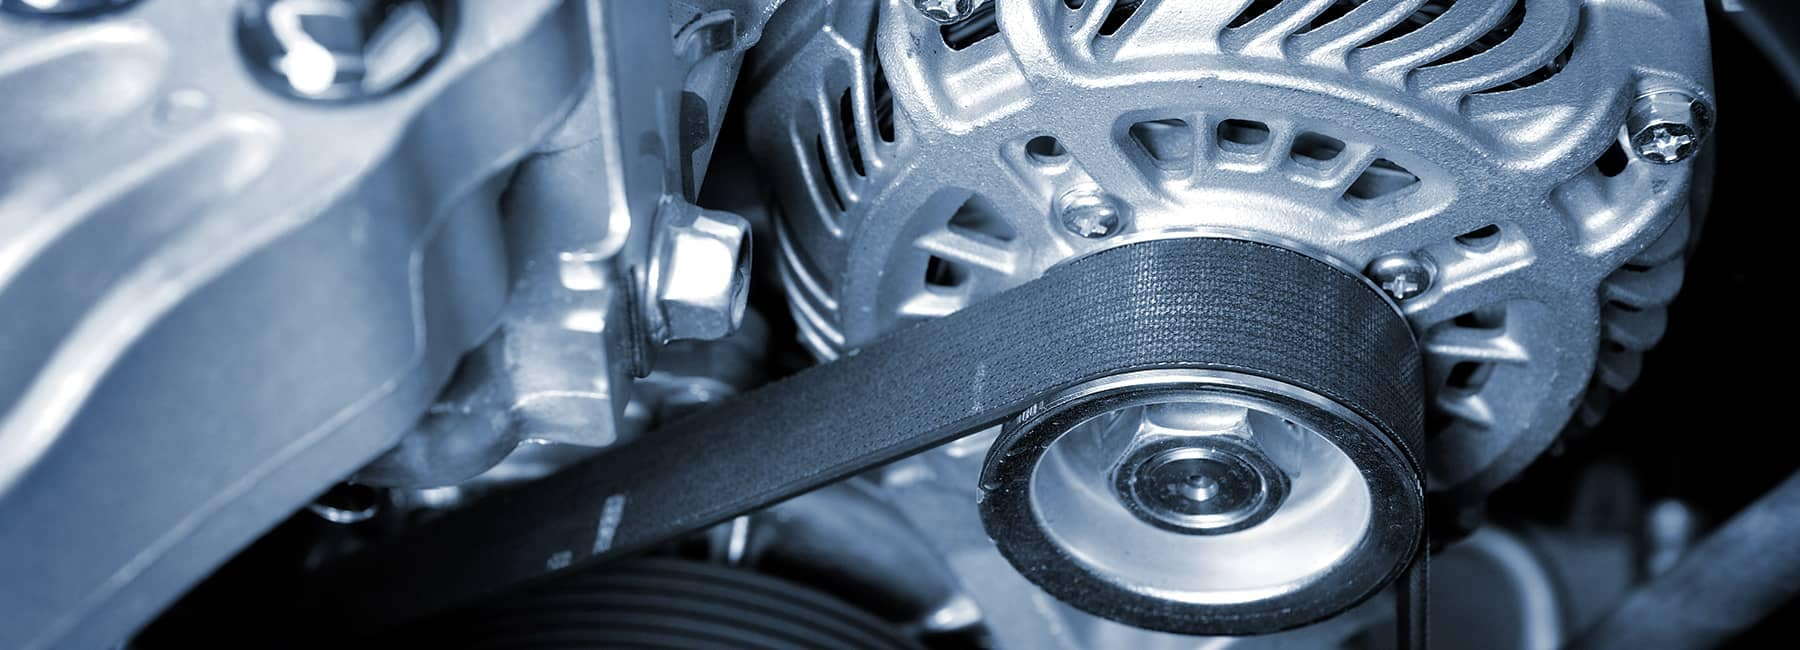 Close up of a belt on the engine of a vehicle